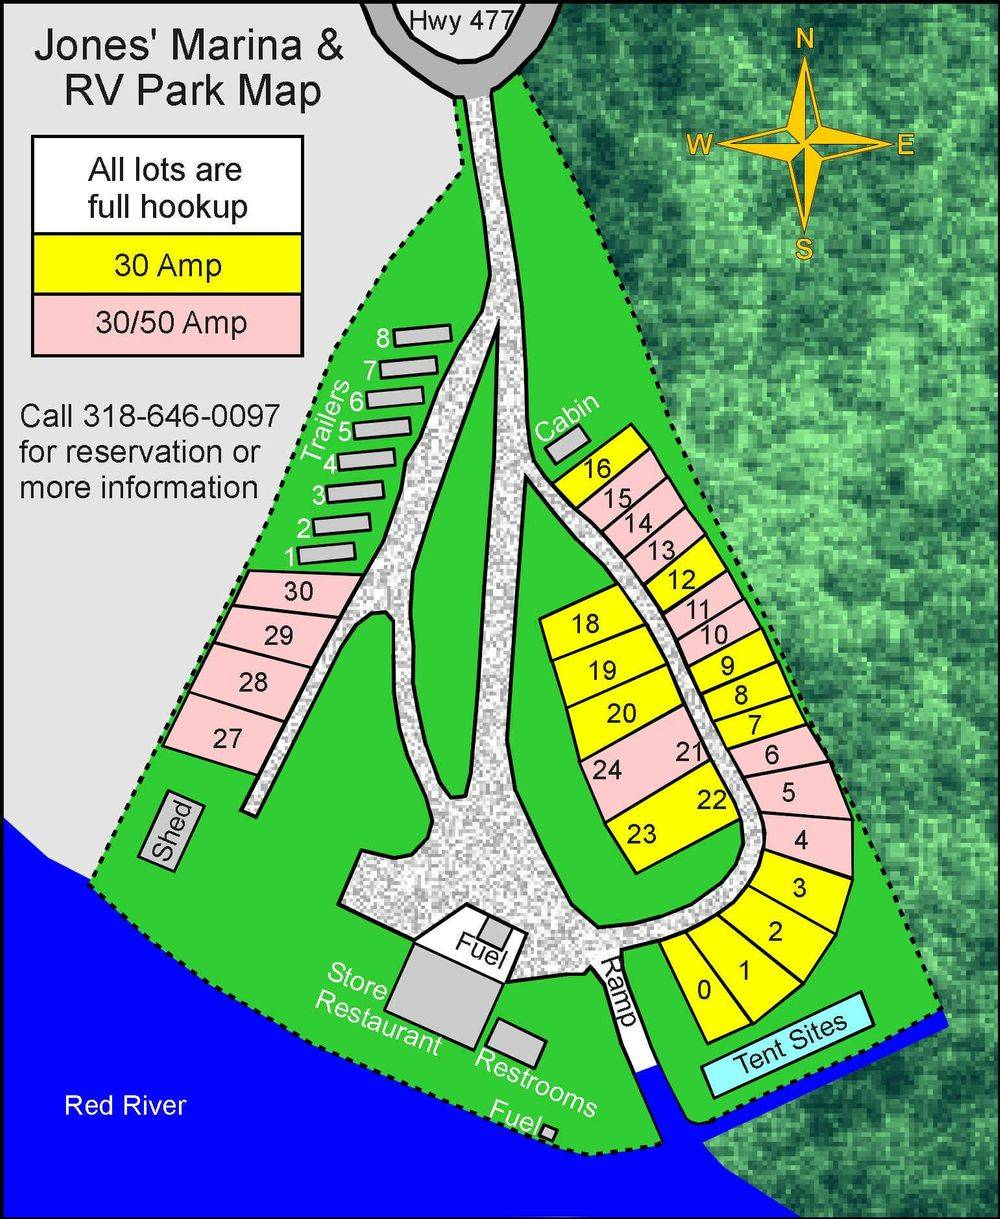 RV Park, map, lots, river, store, cabin, trailers, direction